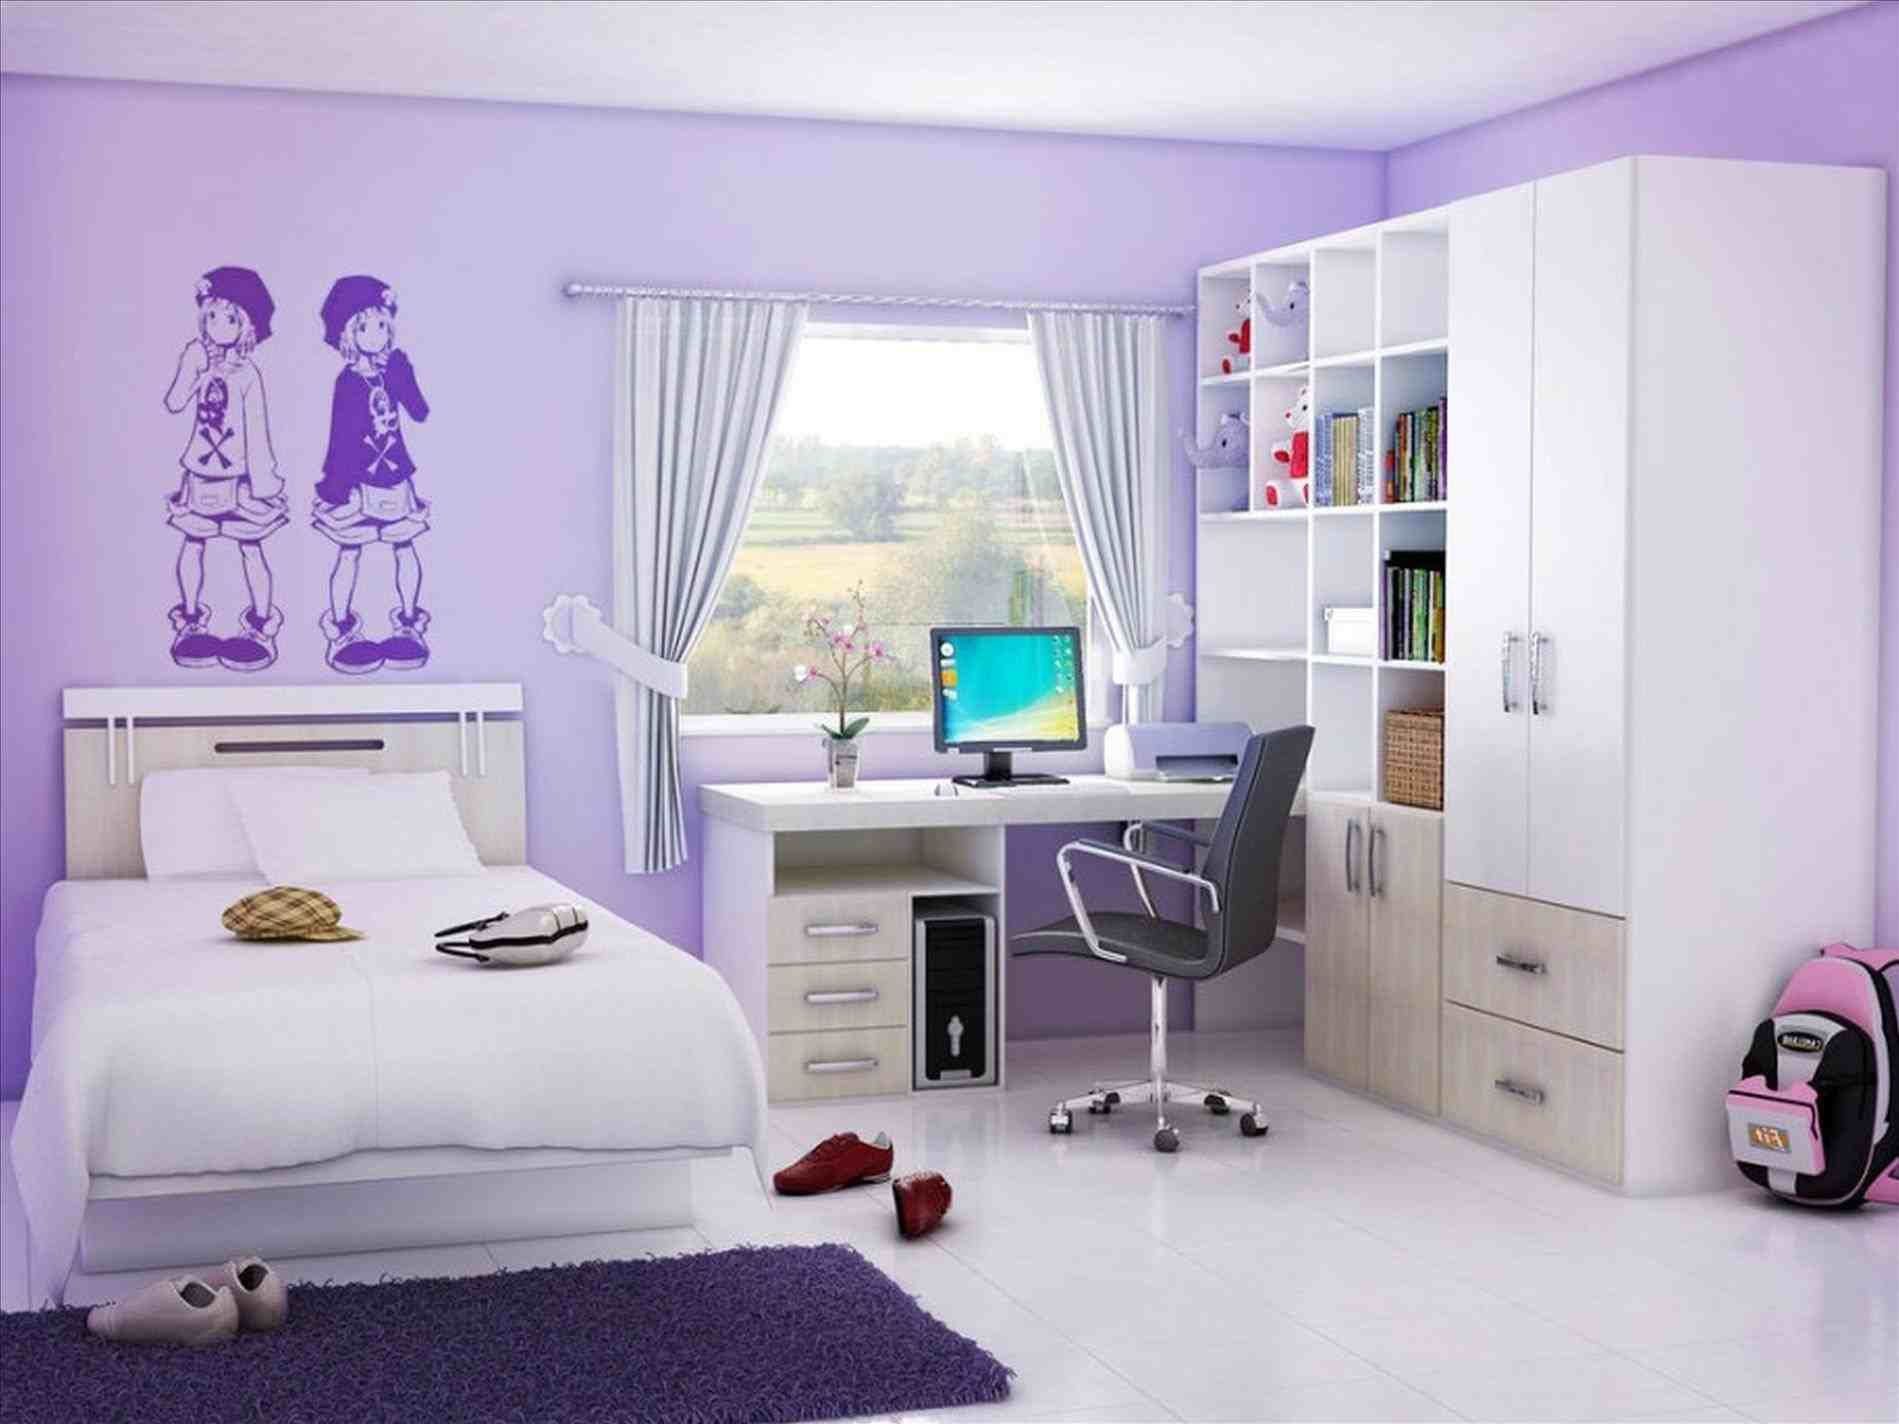 New Post Interior Design Bedroom For Teenage Girls Purple Visit